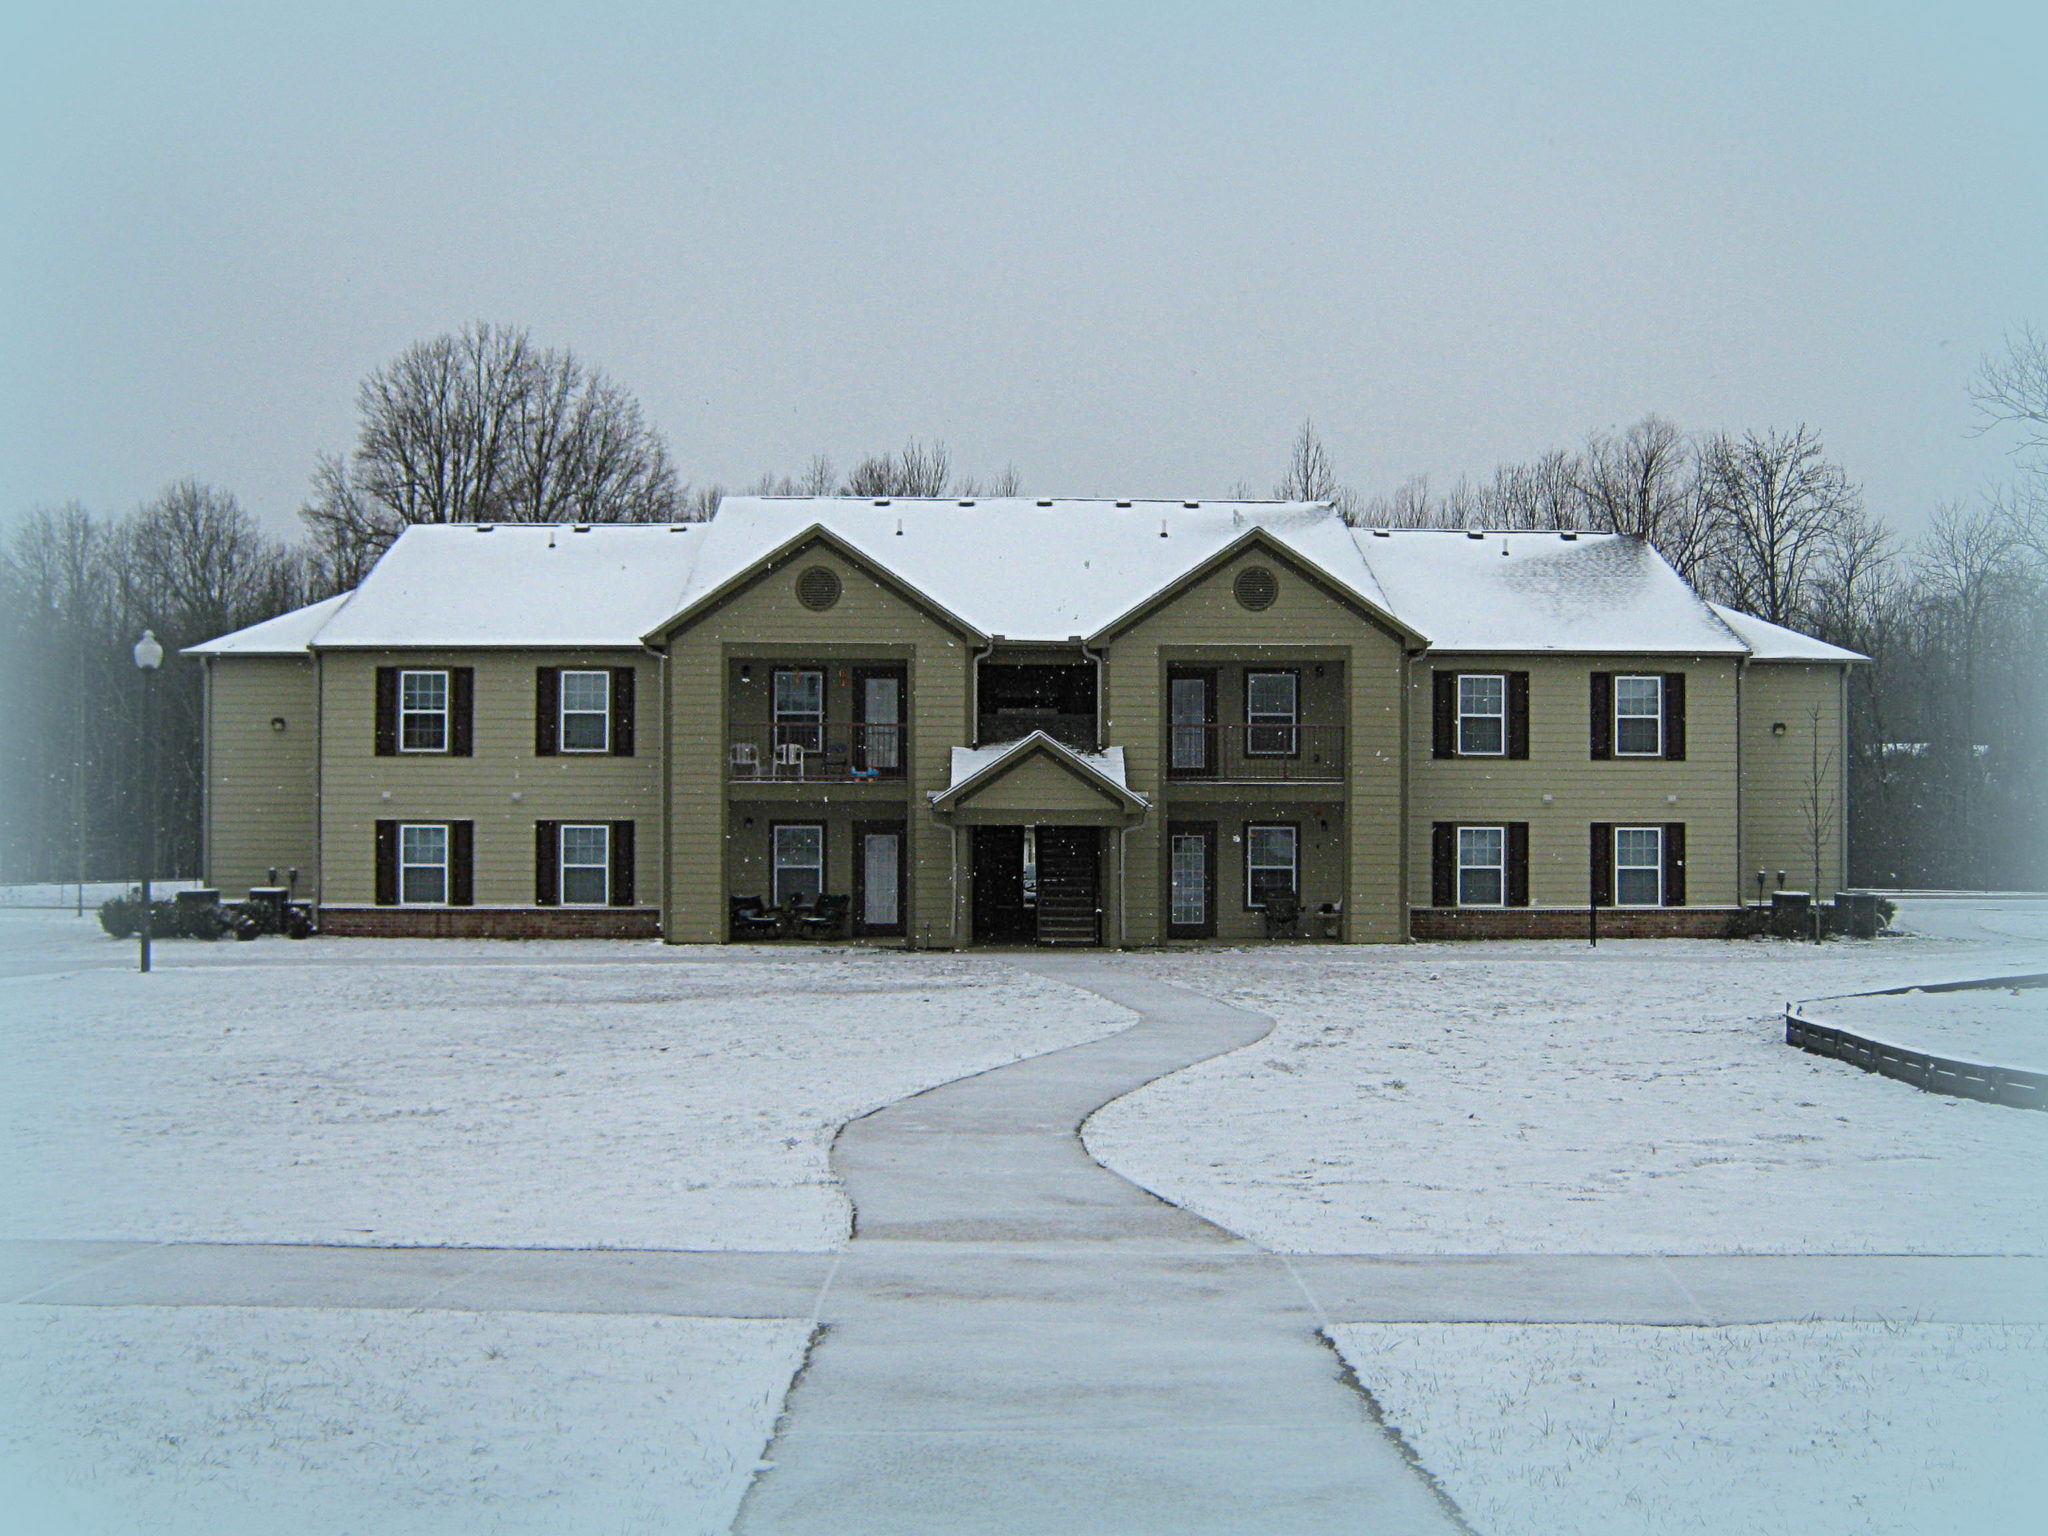 Cane-Creek-Cookeville-TN-Snow-Day.jpg